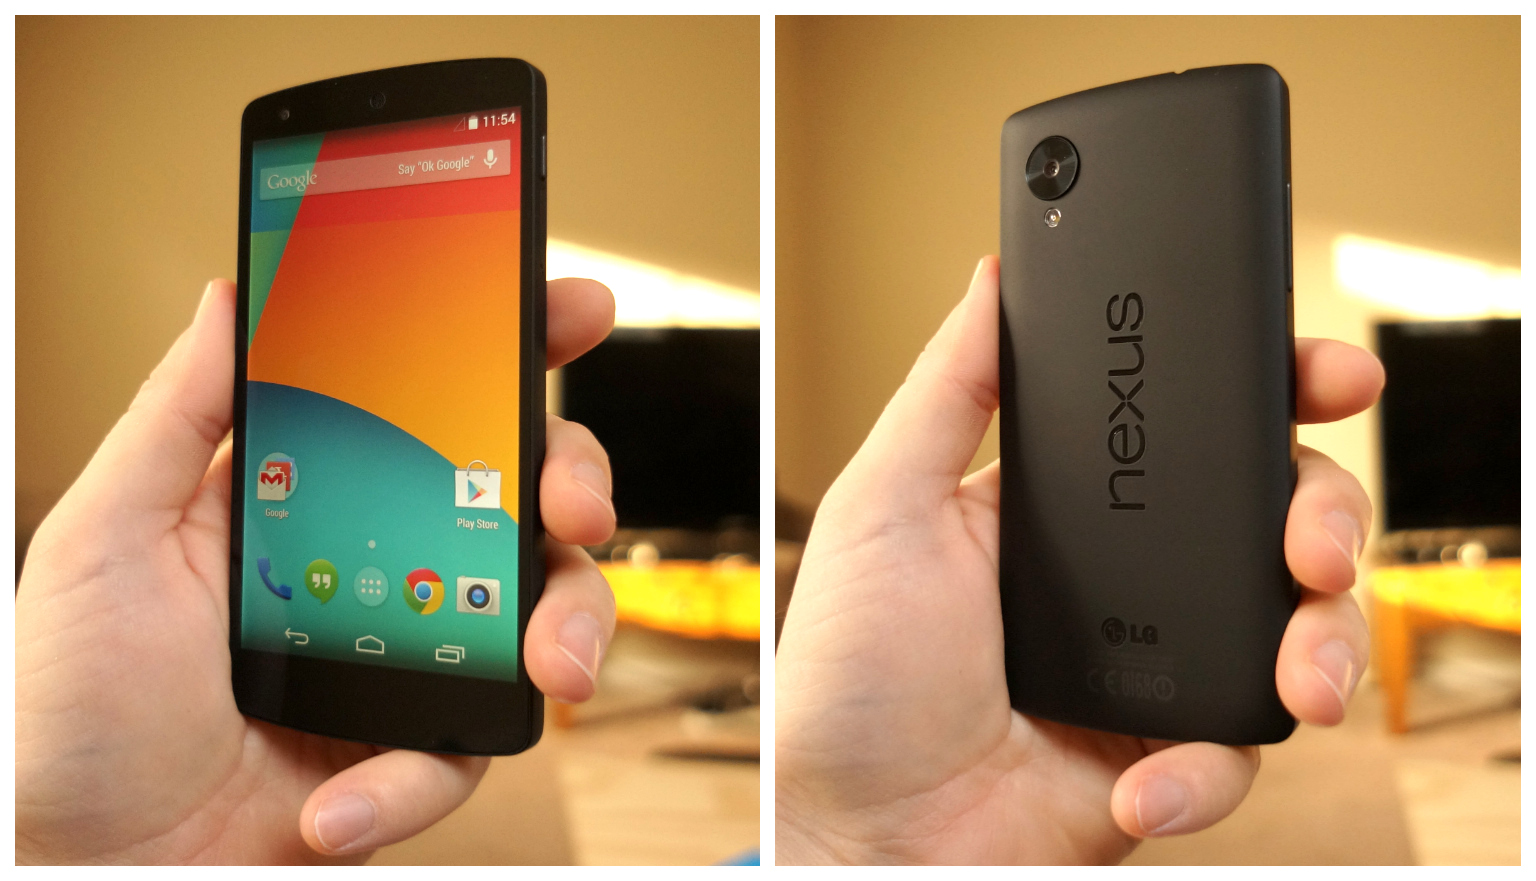 The Nexus 5 launcher will NOT be available for other devices